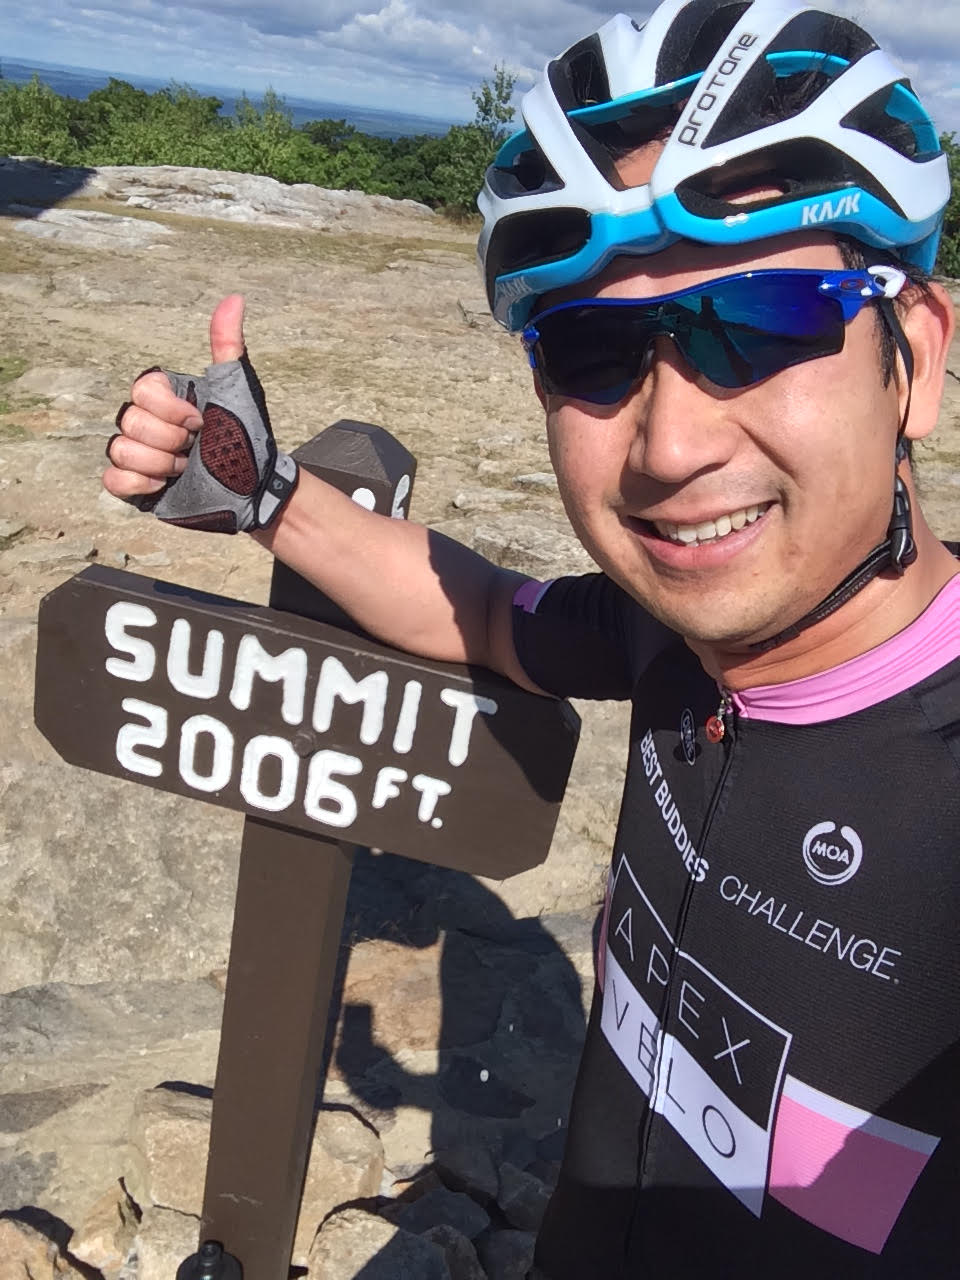 Ride to the top of Mt. Wachusett - training for the Best Buddies Challenge